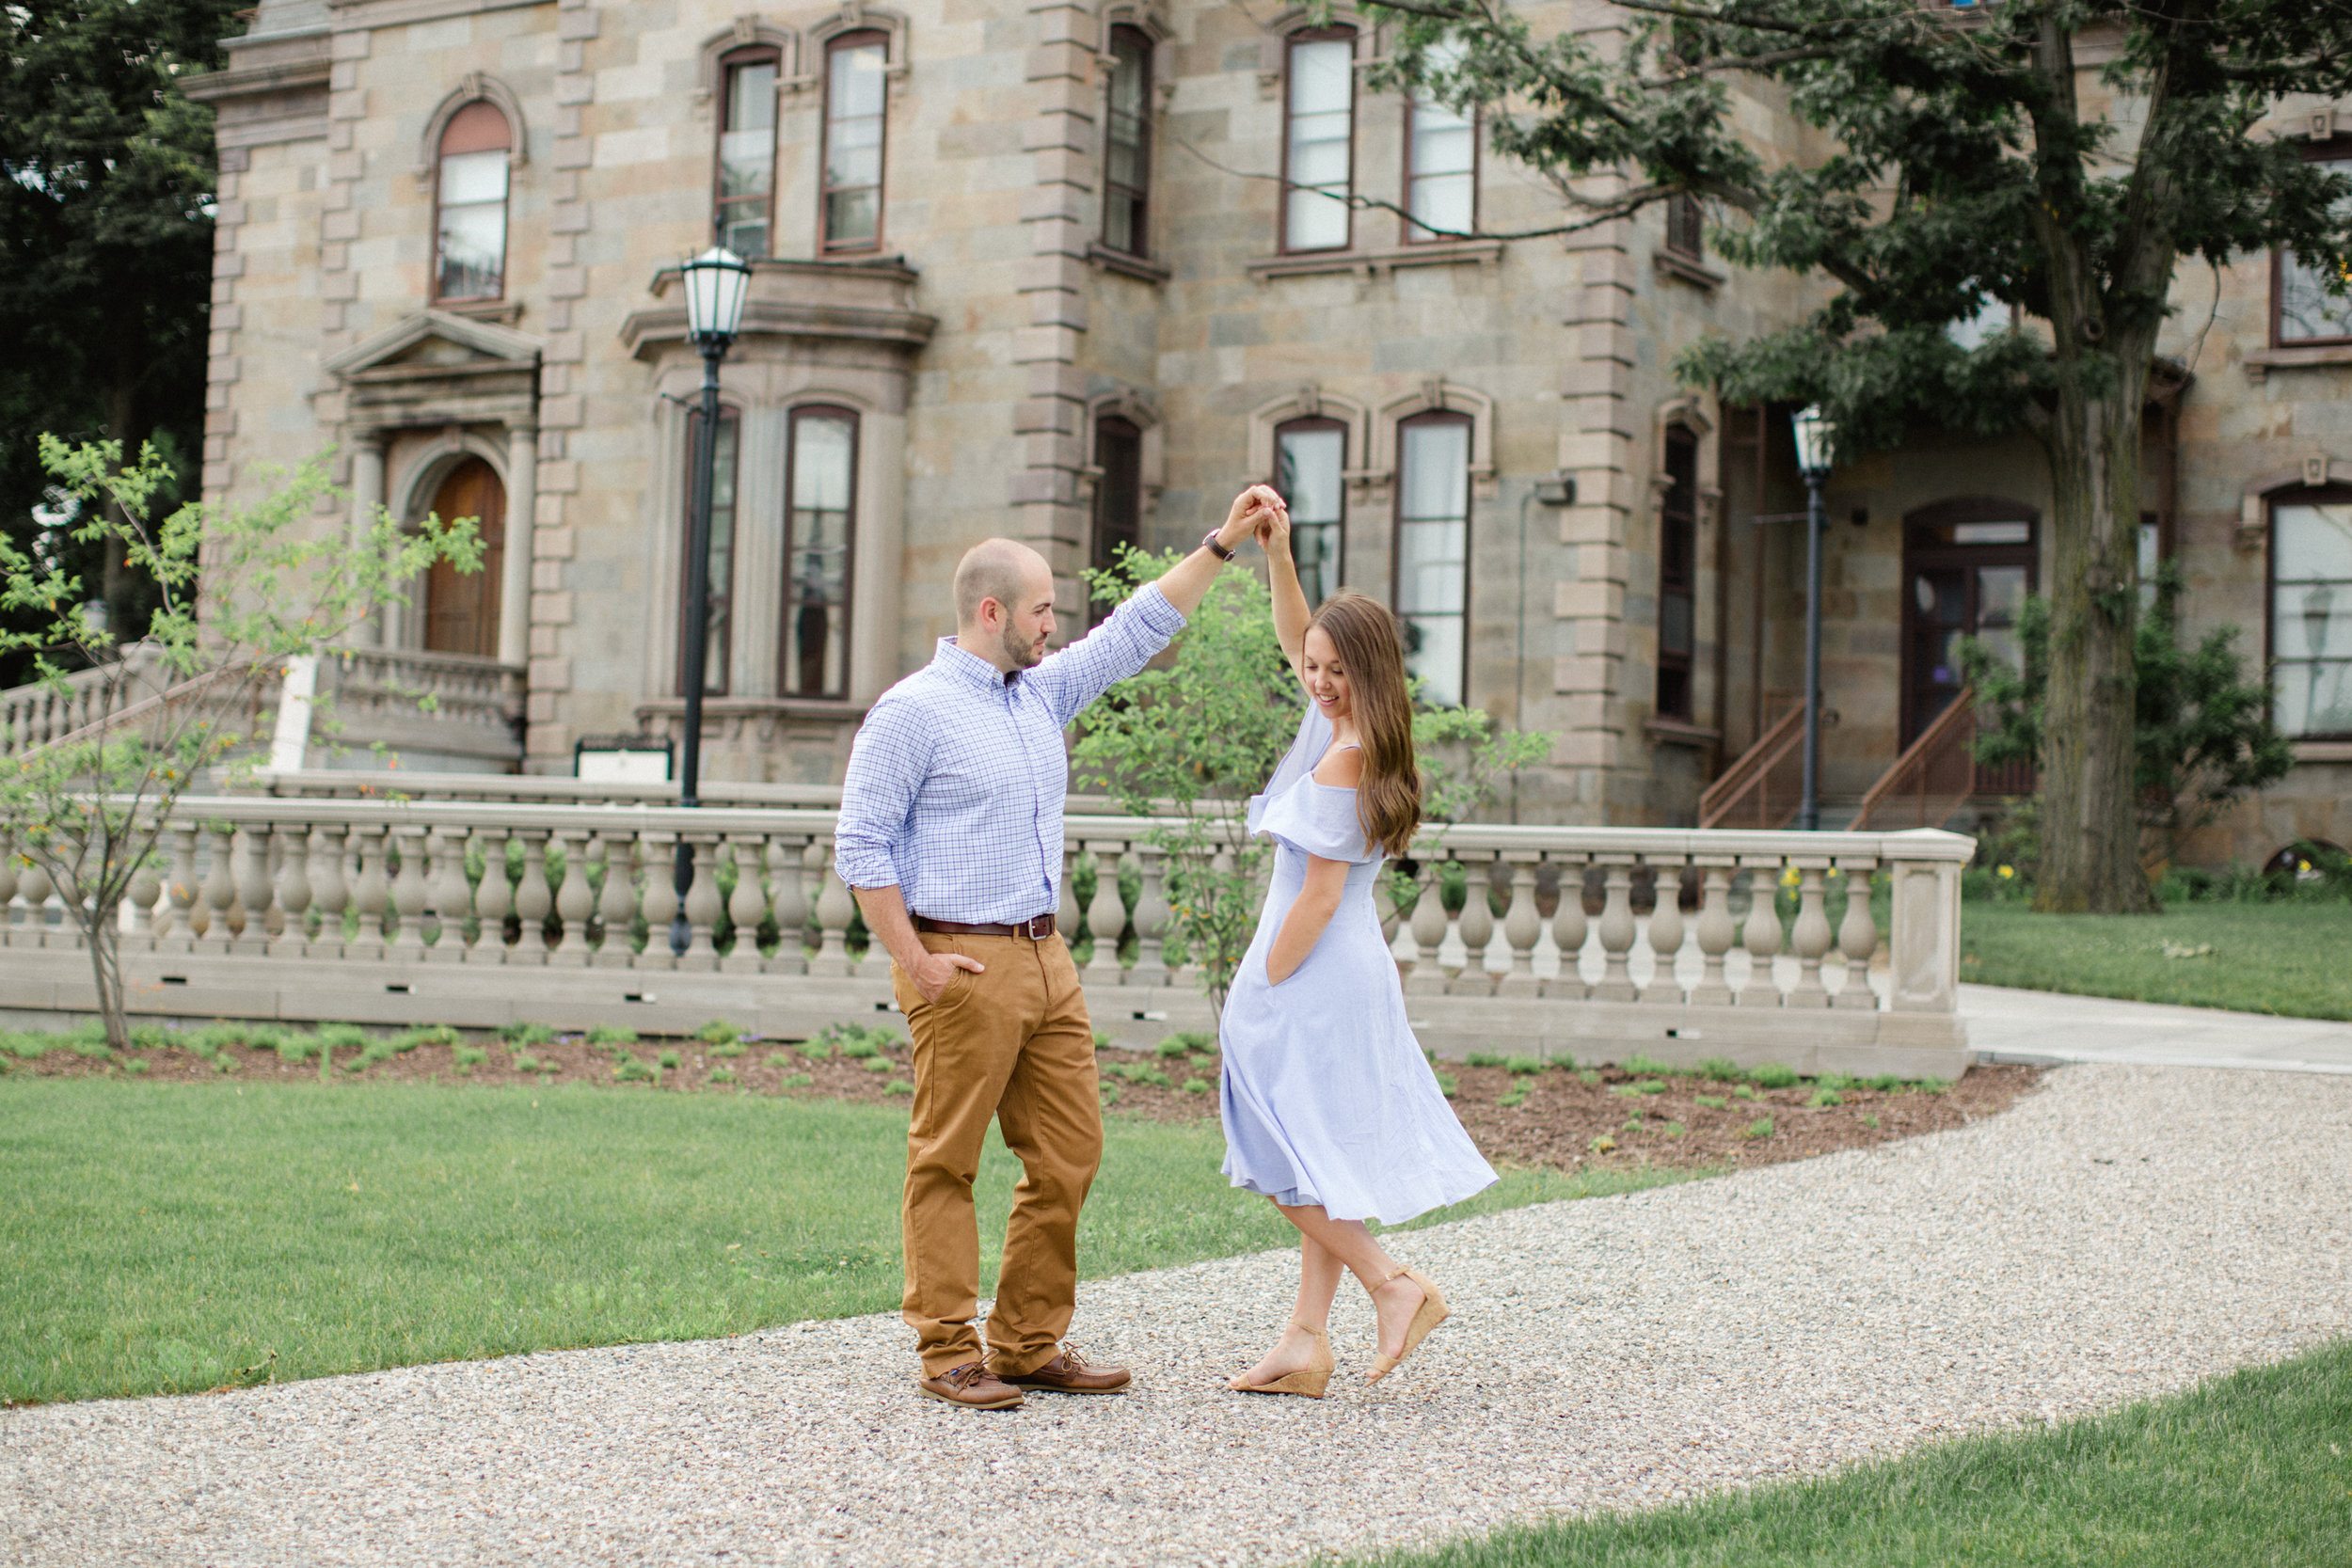 University of Scranton Engagement Session Photos_JDP-26.jpg